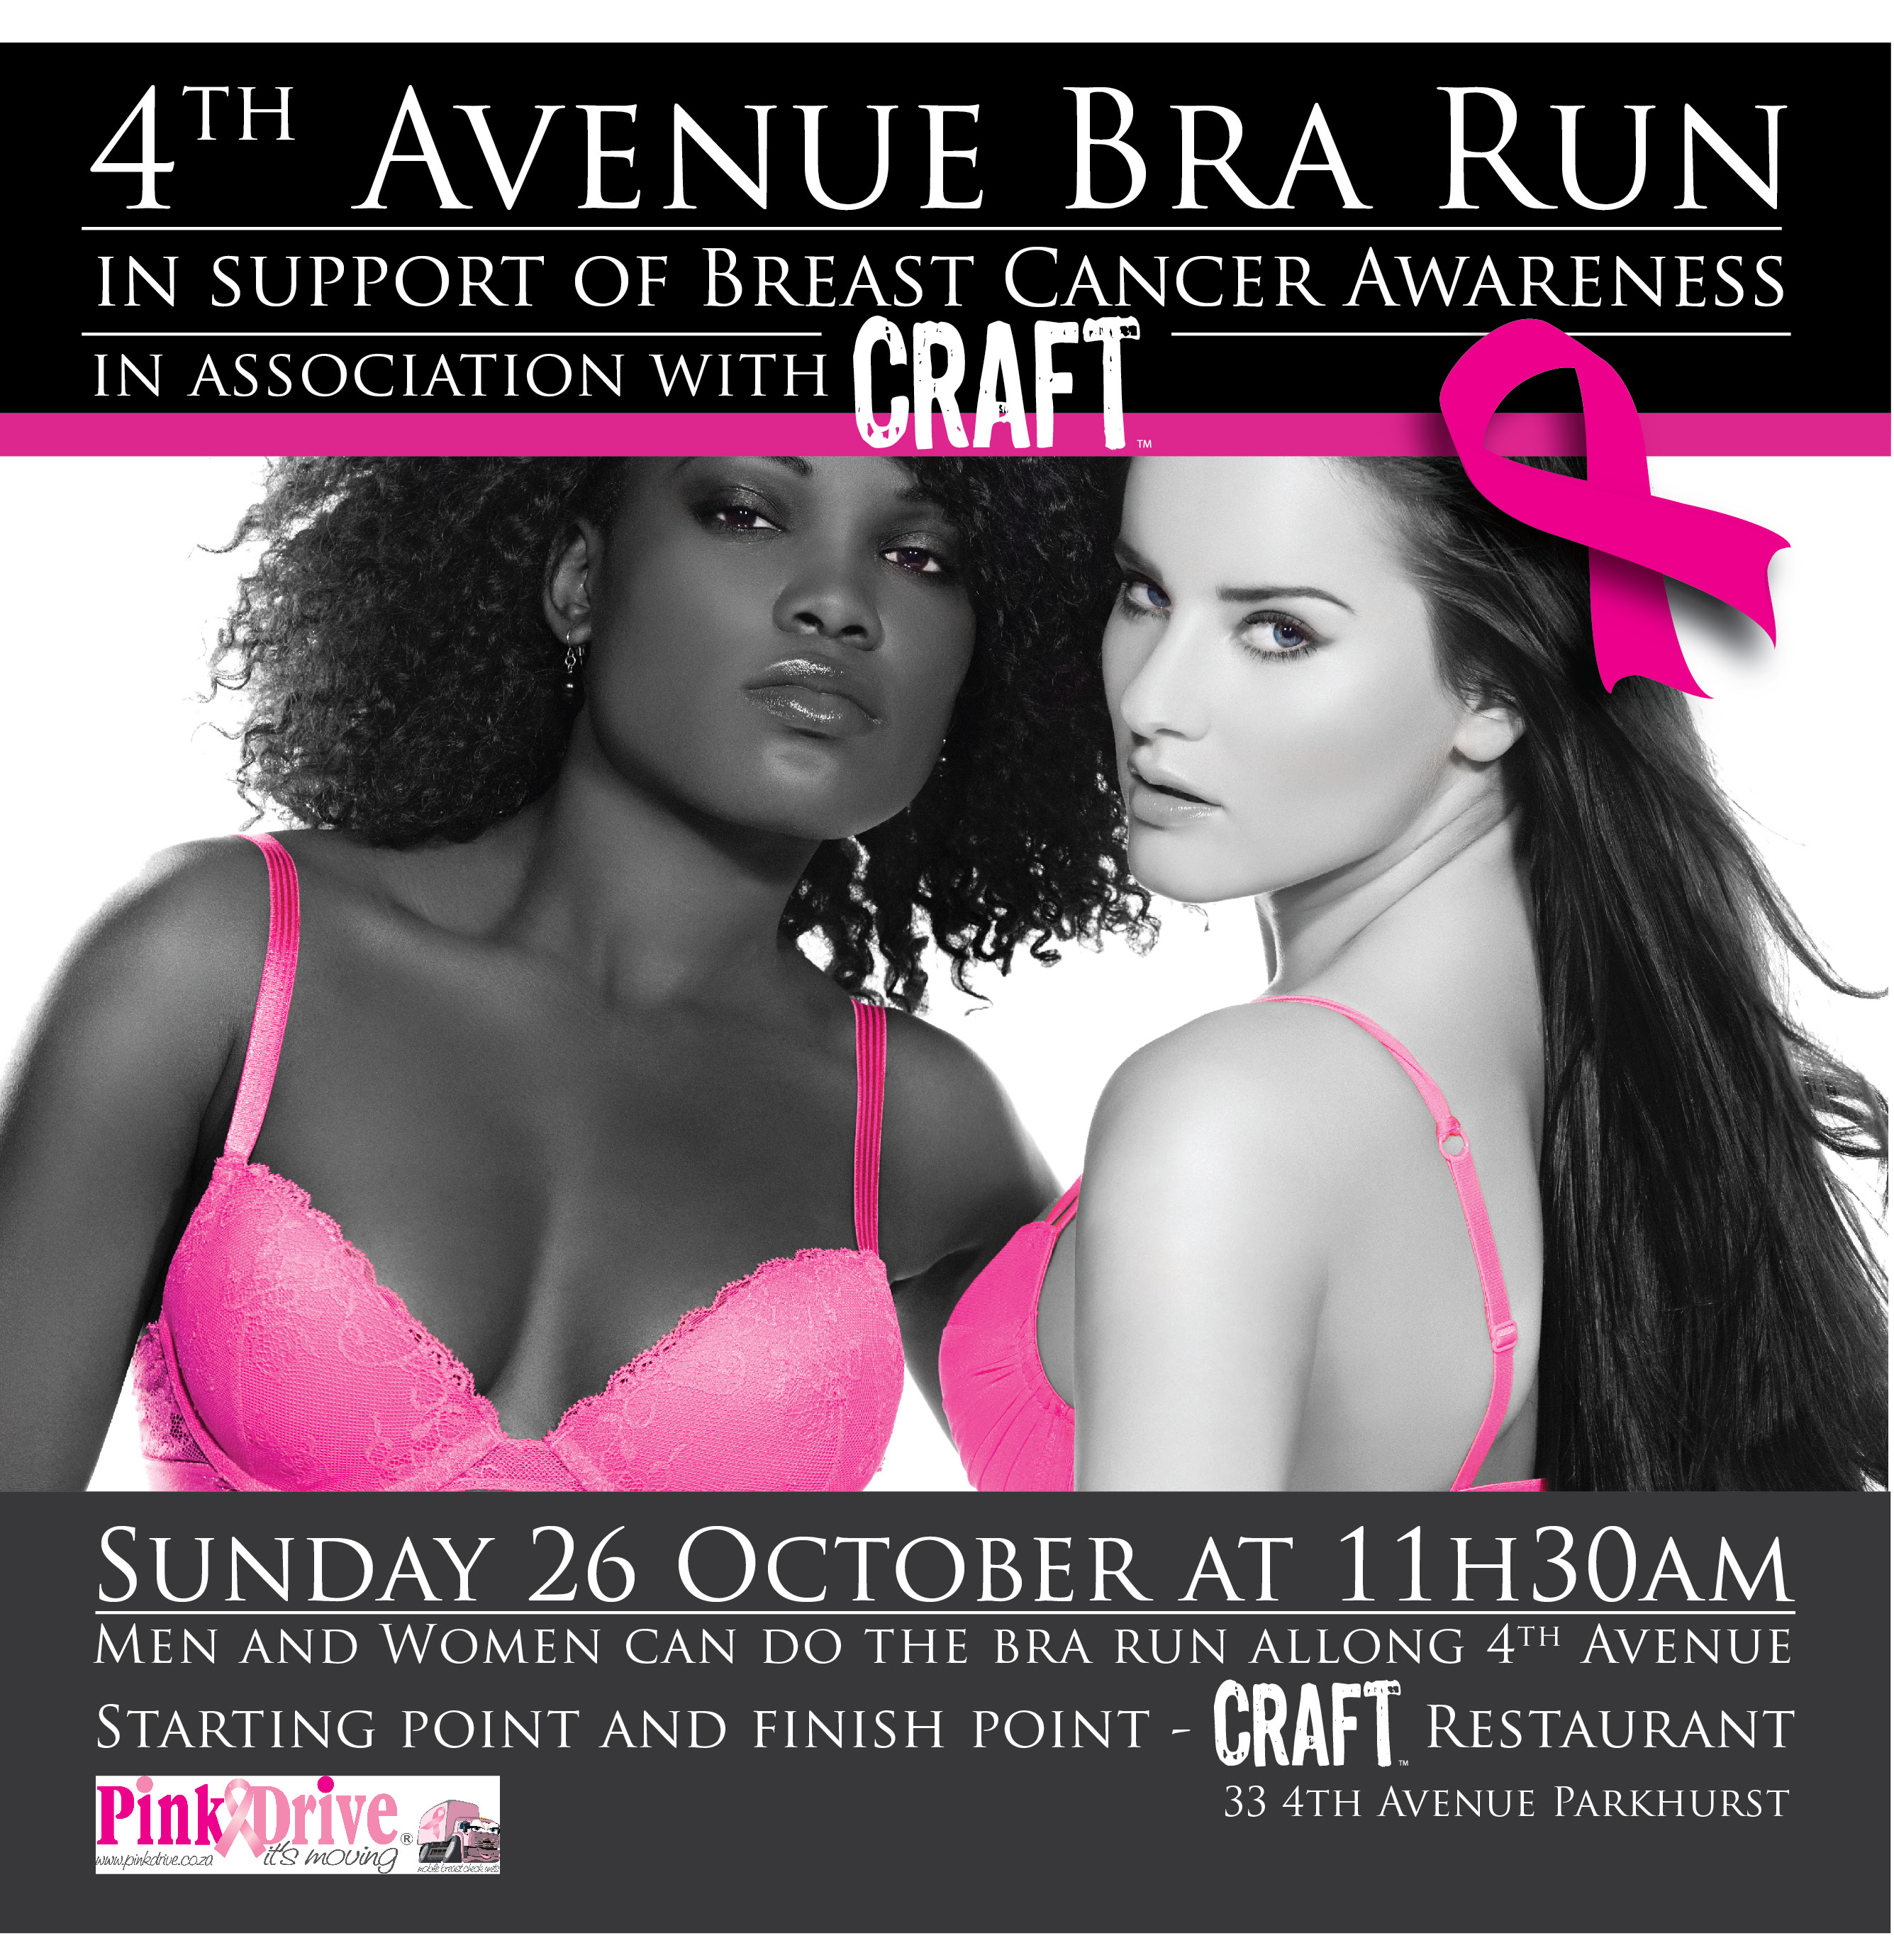 The 4th Avenue Bra Run